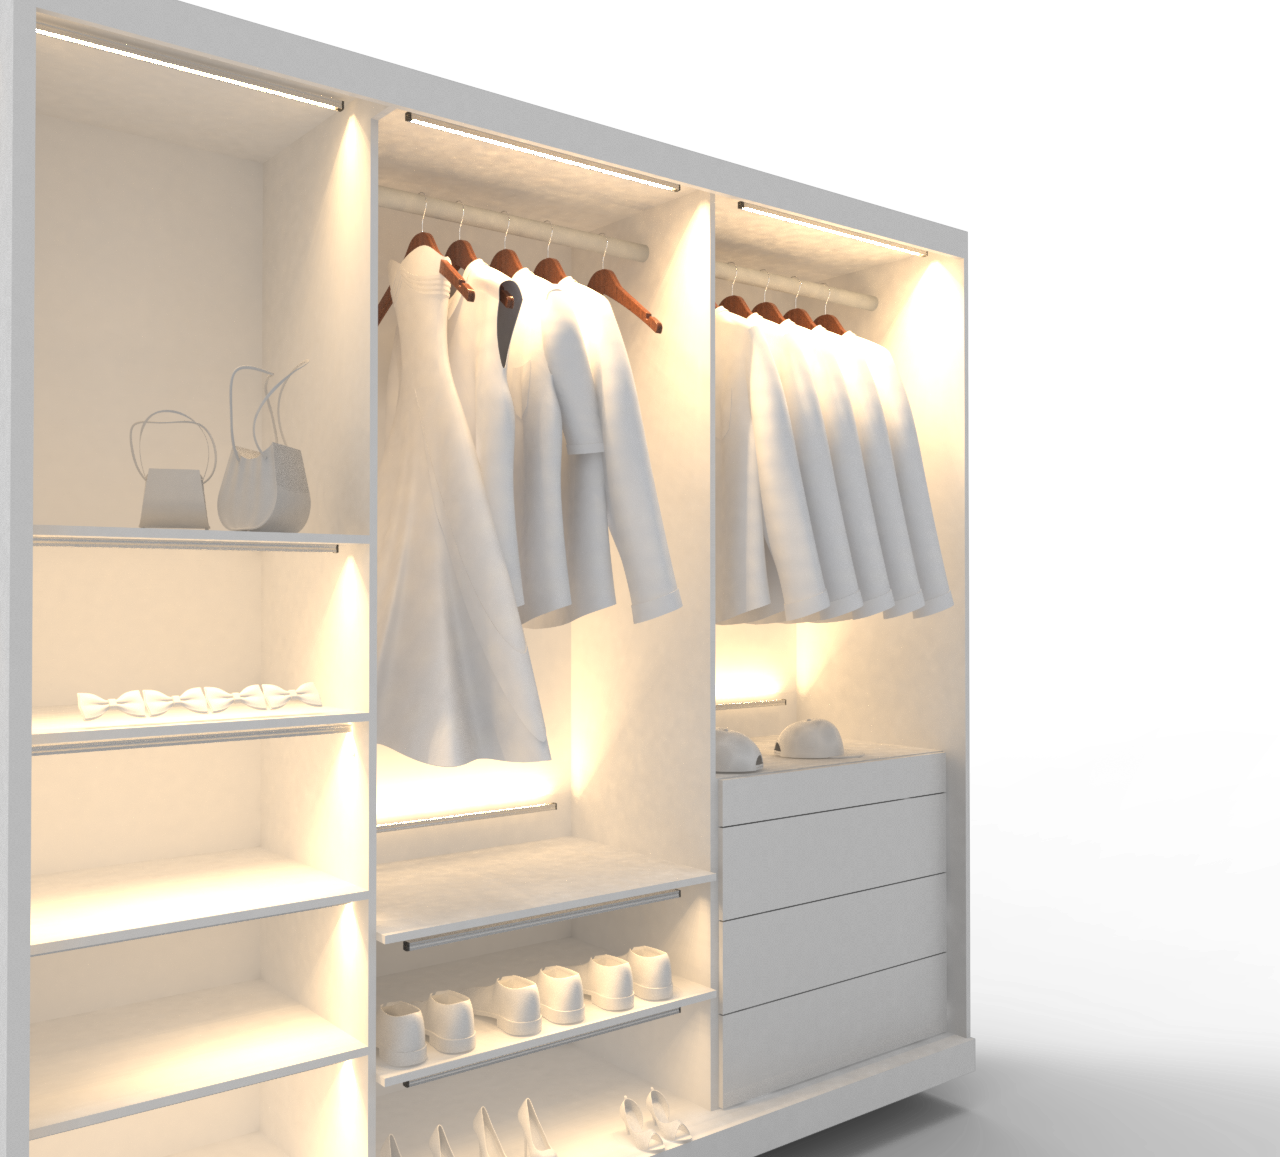 Lighting Ideas For Your Closet: Design Vignettes